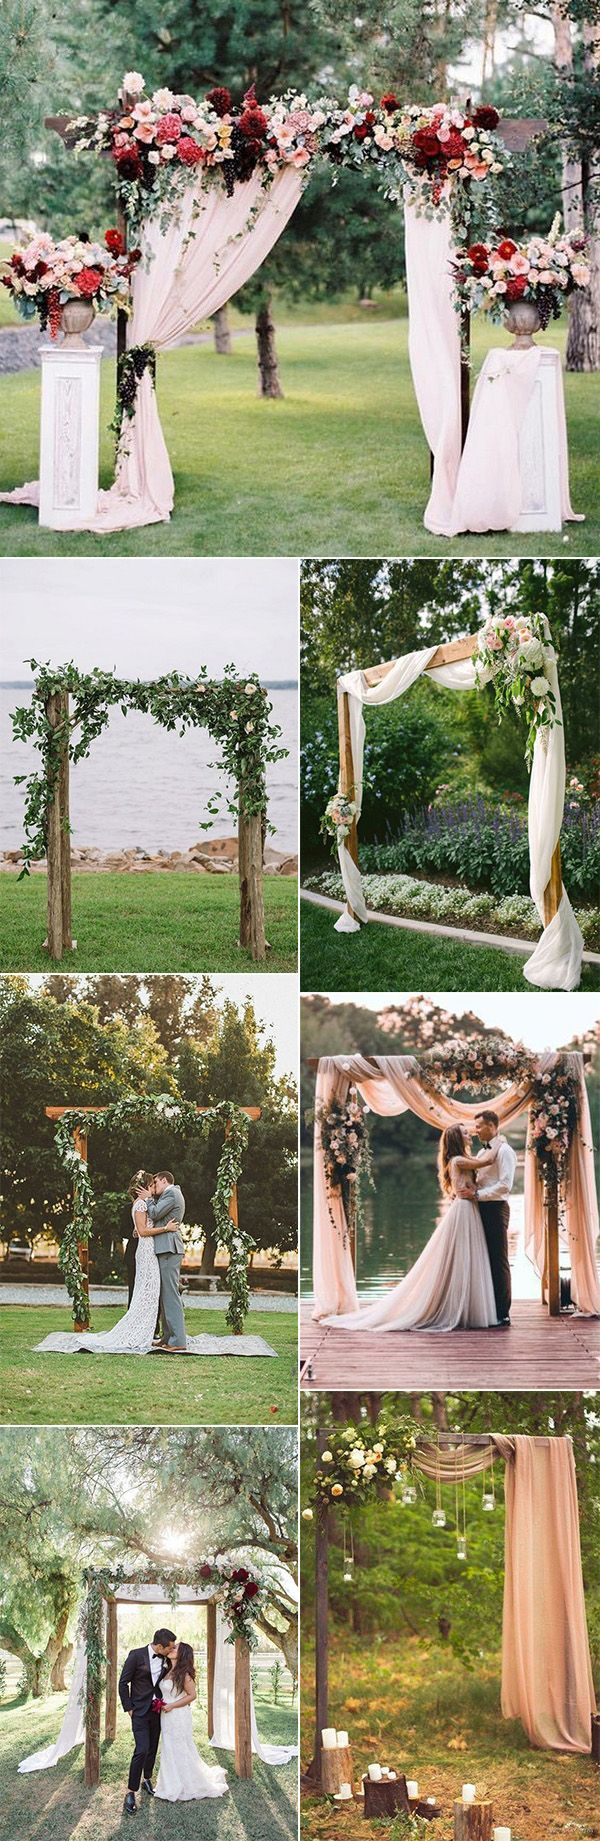 Wedding decoration ideas 2018   Brilliant Outdoor Wedding Decoration Ideas for  Trends  I